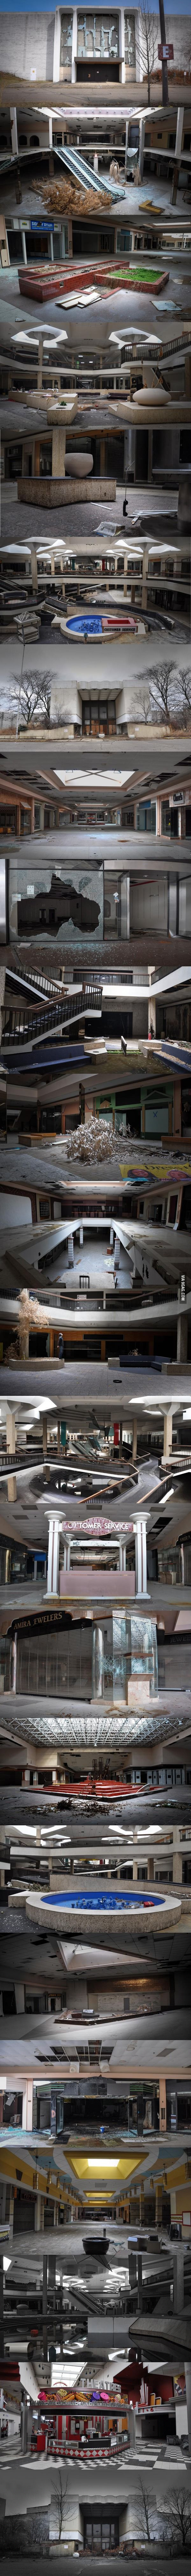 The abandoned Rolling Acres Mall in Ohio. At the time of its opening, it was the 'world's largest shopping center'.